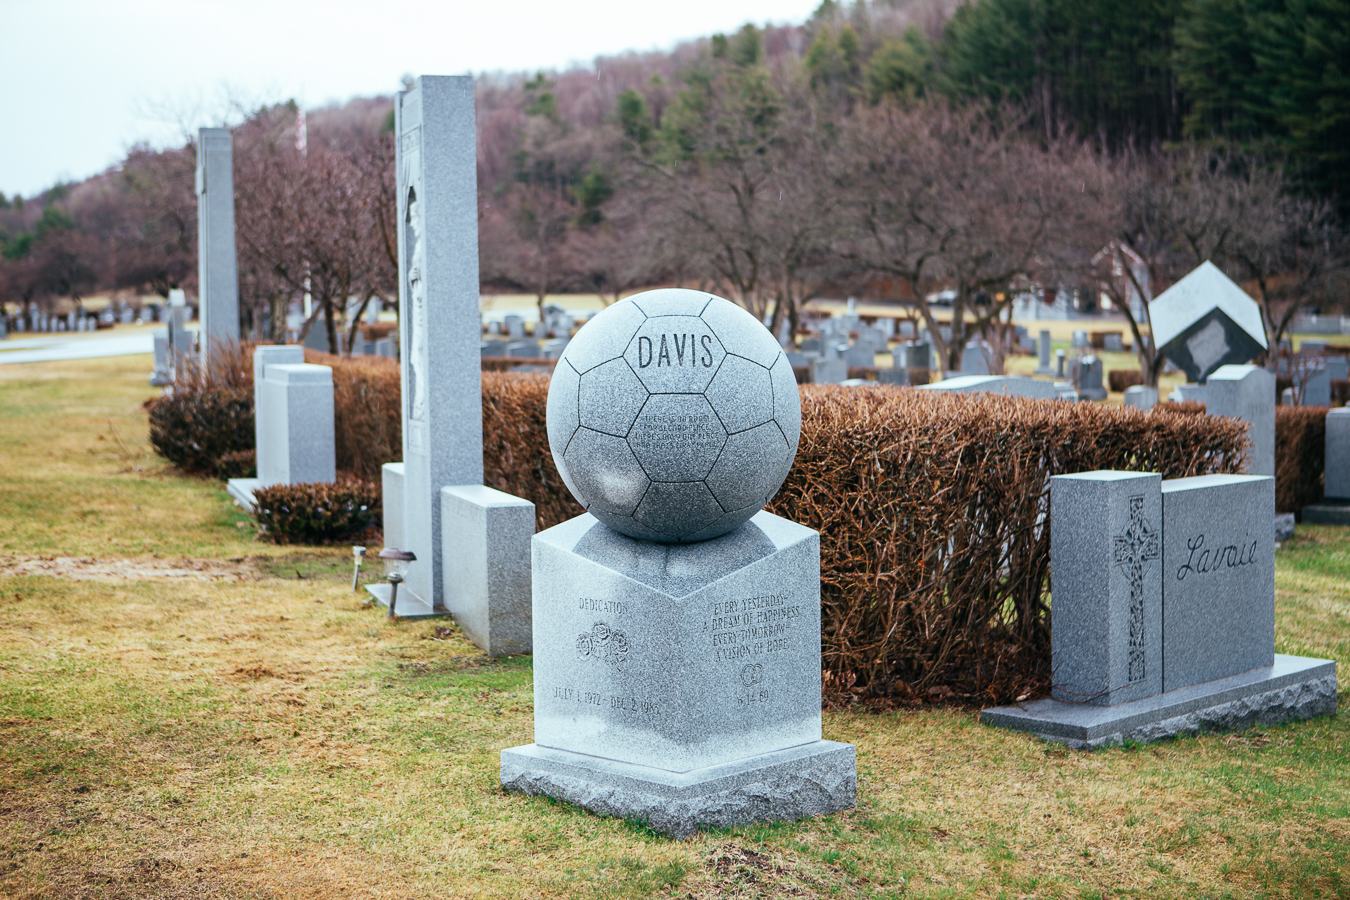 Davis loved nothing more than soccer.